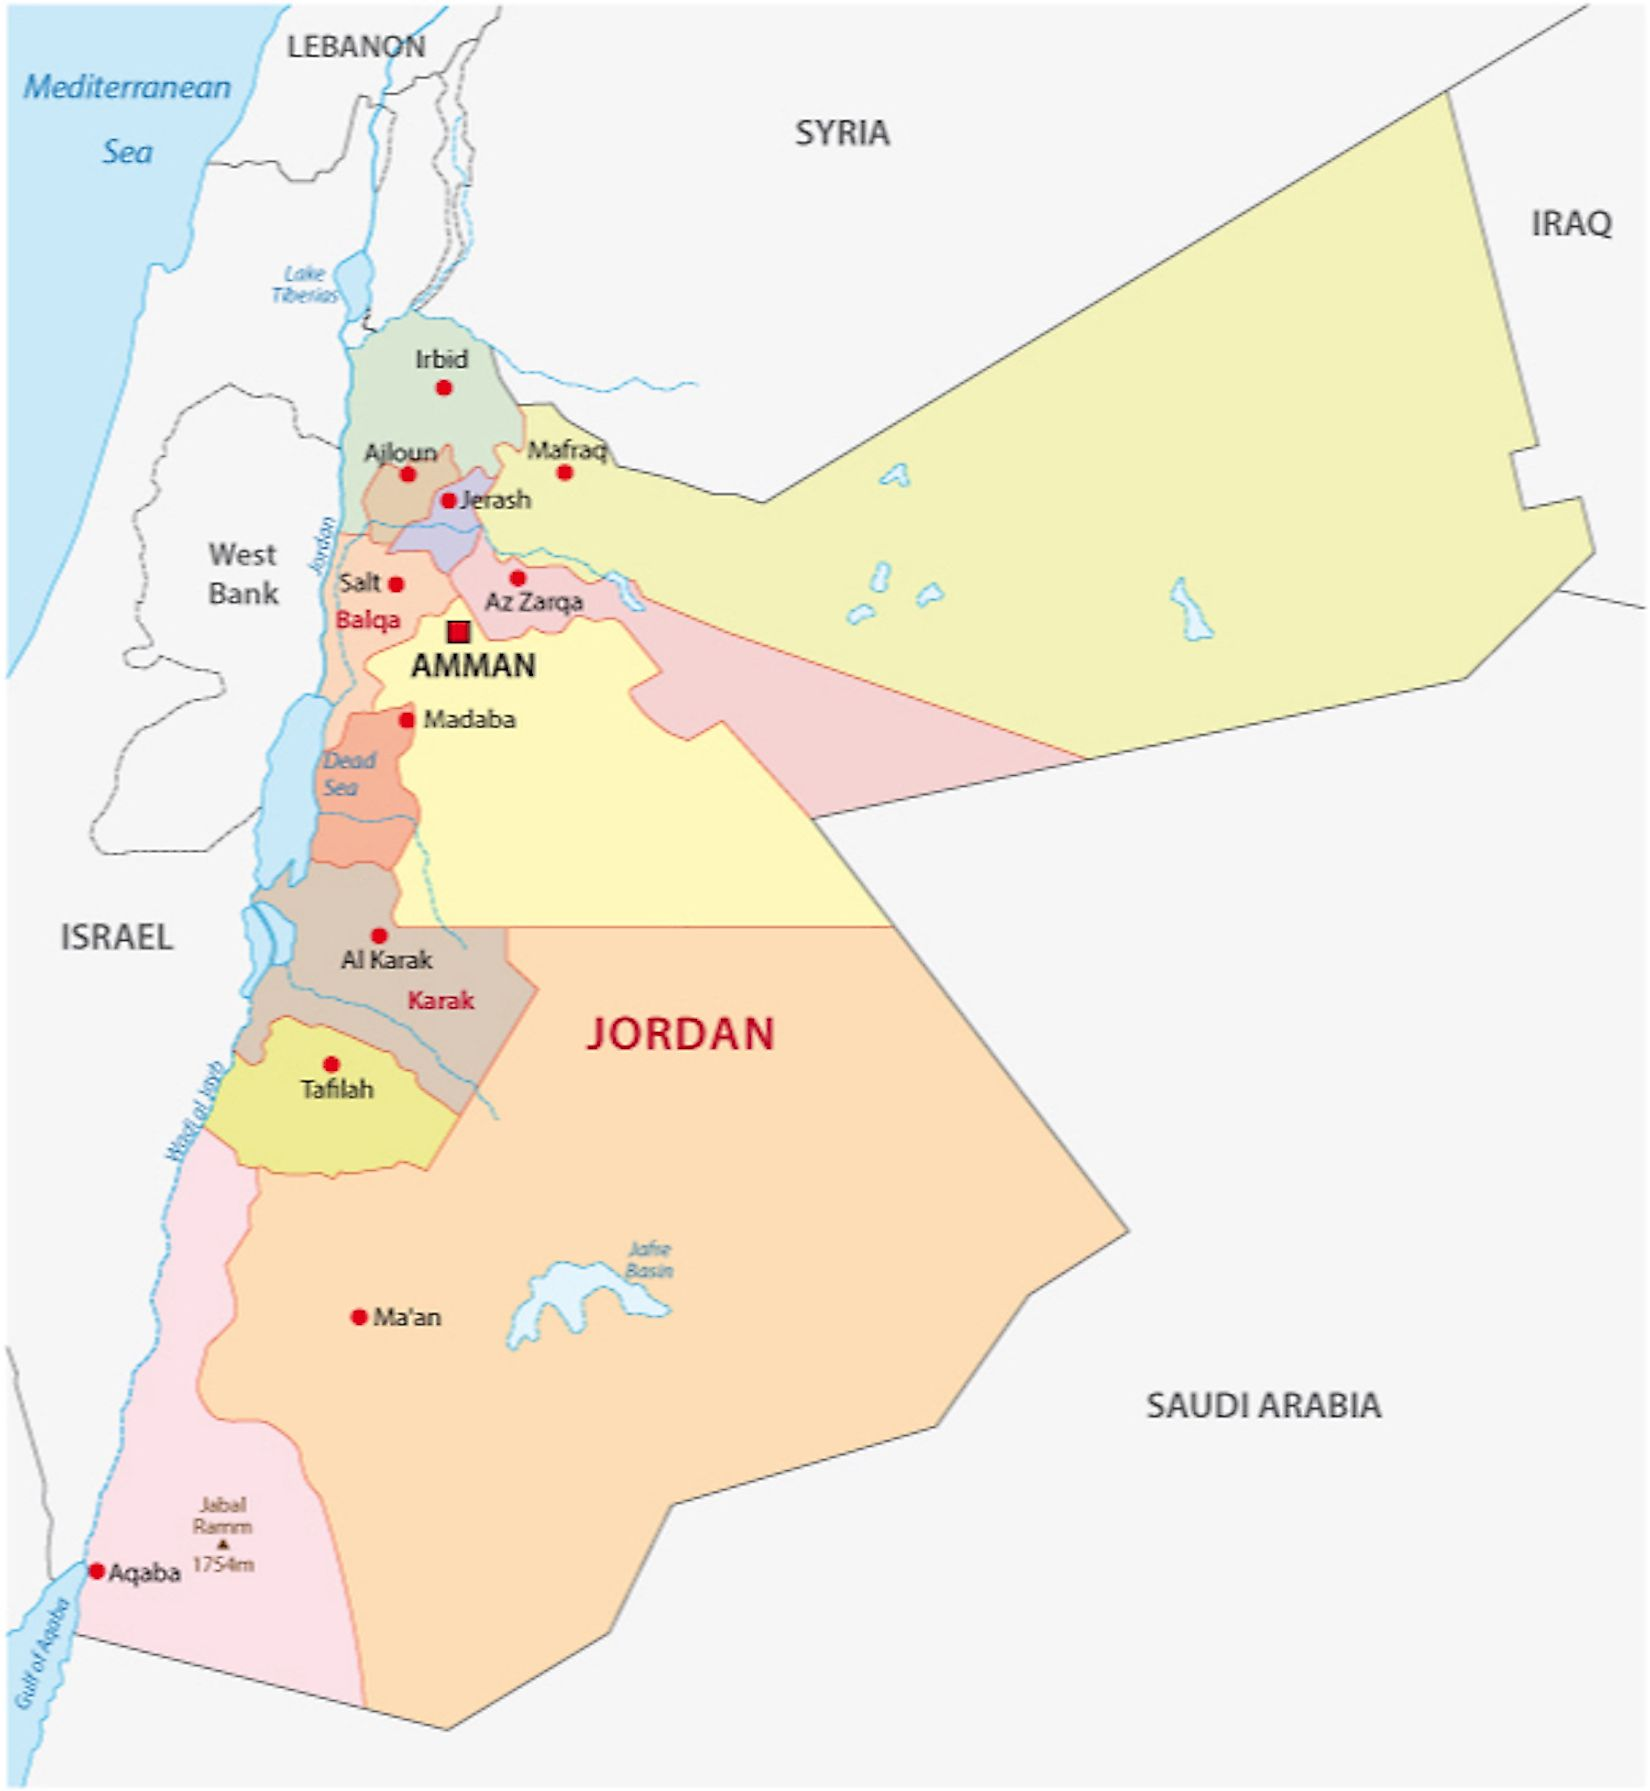 Political Map of Jordan displaying 12 governorates and the national capital of Amman.